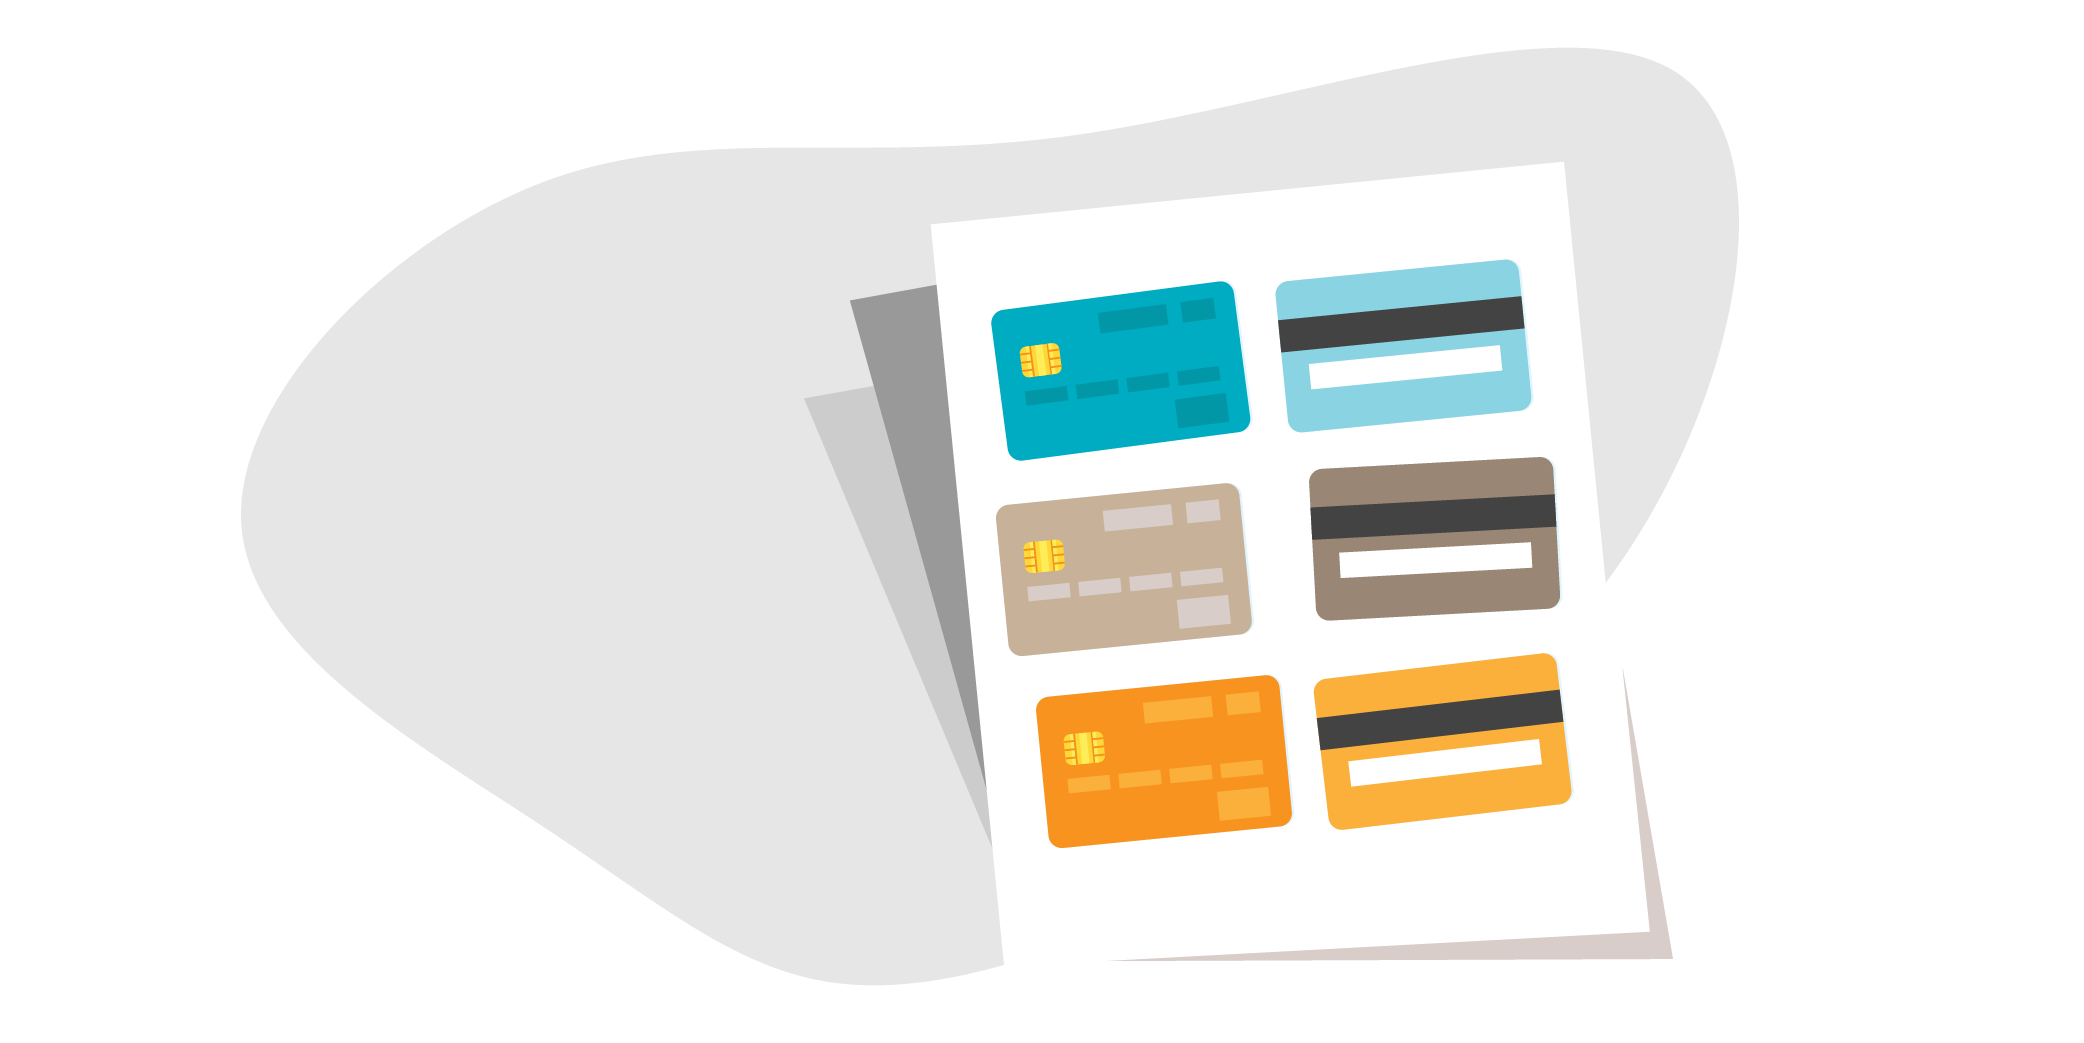 Copies of credit cards illustration